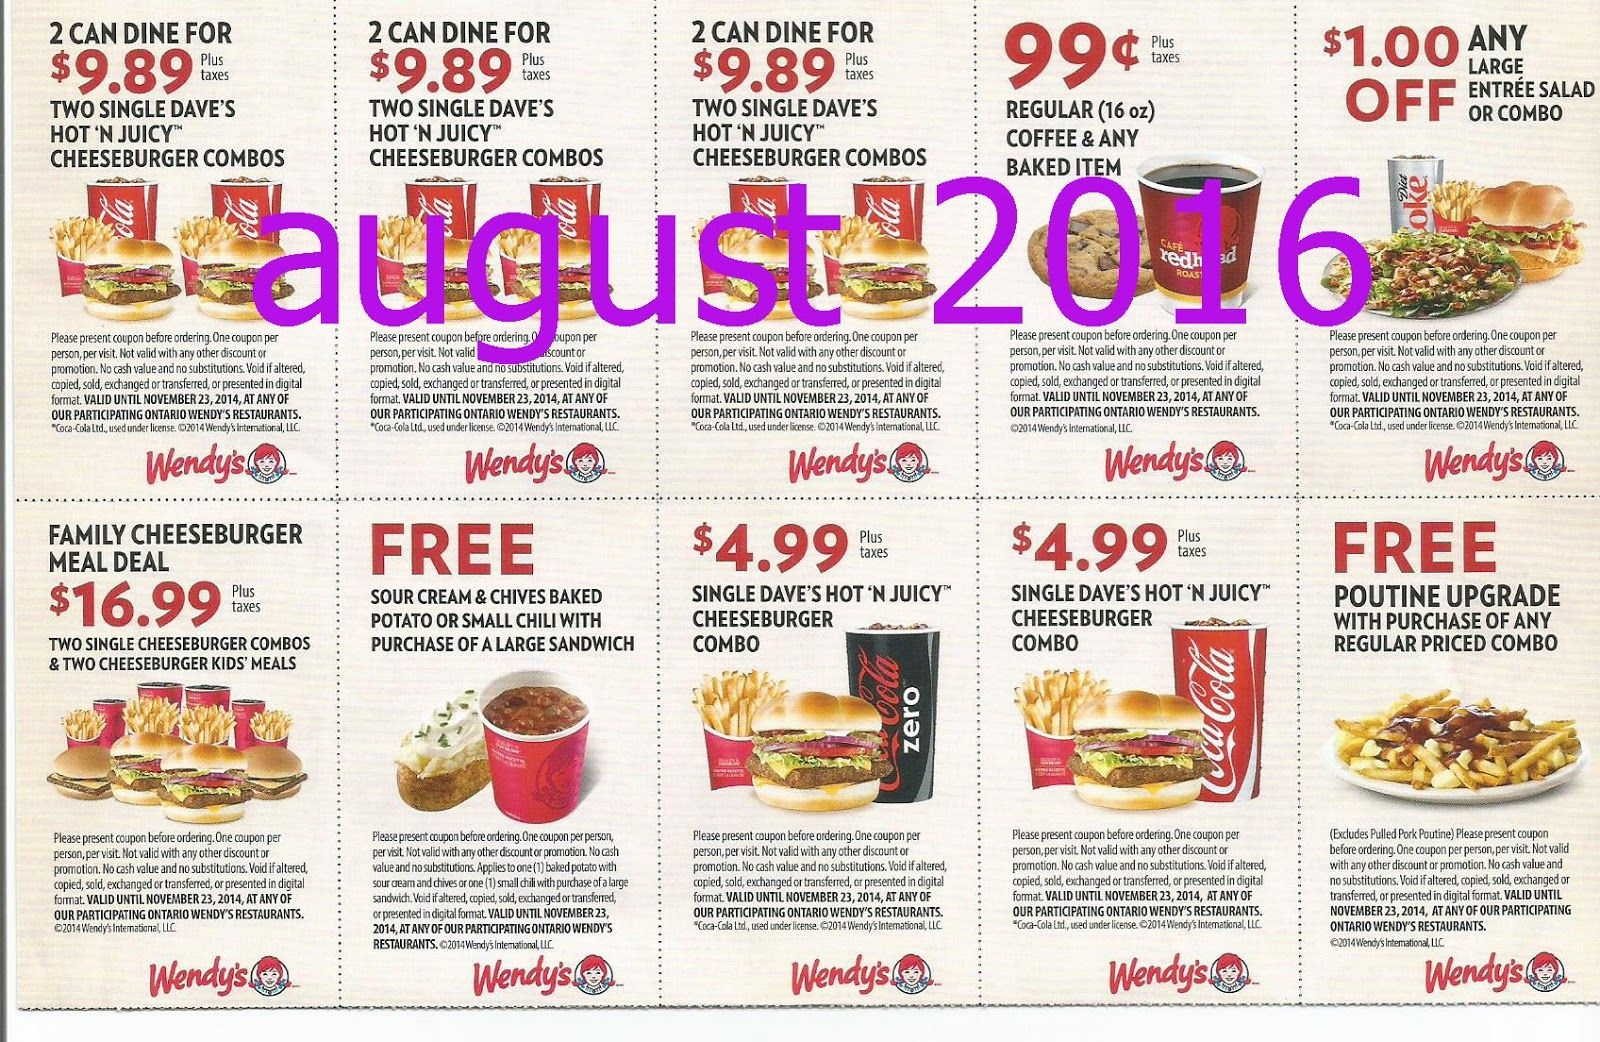 Free Printable Coupons: Wendys Coupons | Fast Food Coupons | Wendys - Free Online Printable Grocery Coupons Canada